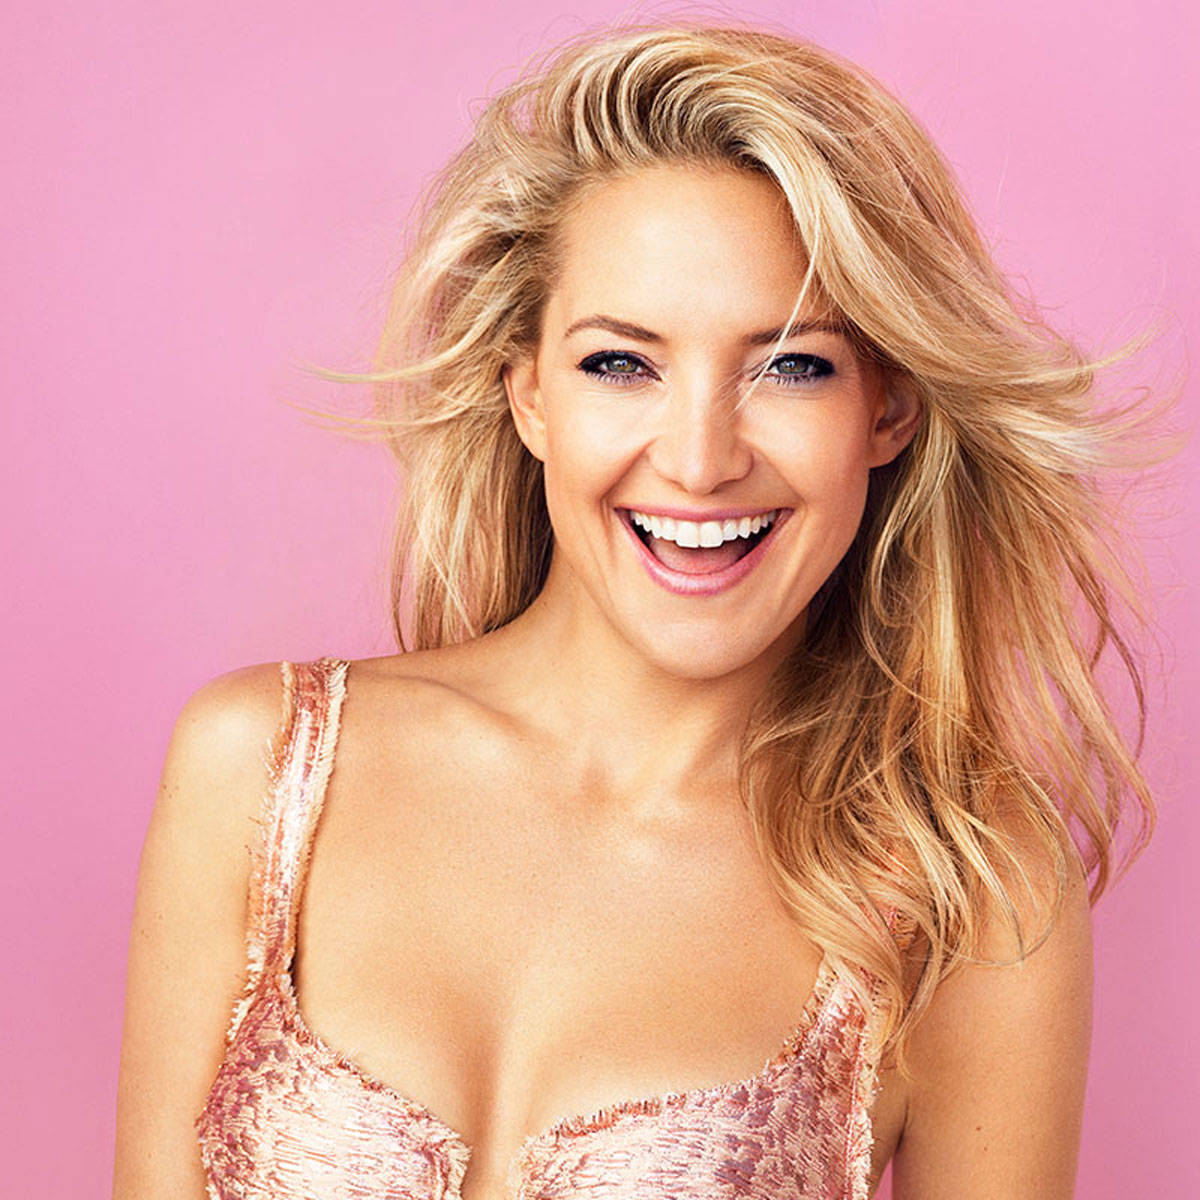 hbz-kate-hudson-dec-jan-2014-001-aijjxy-sq-xln-jpg